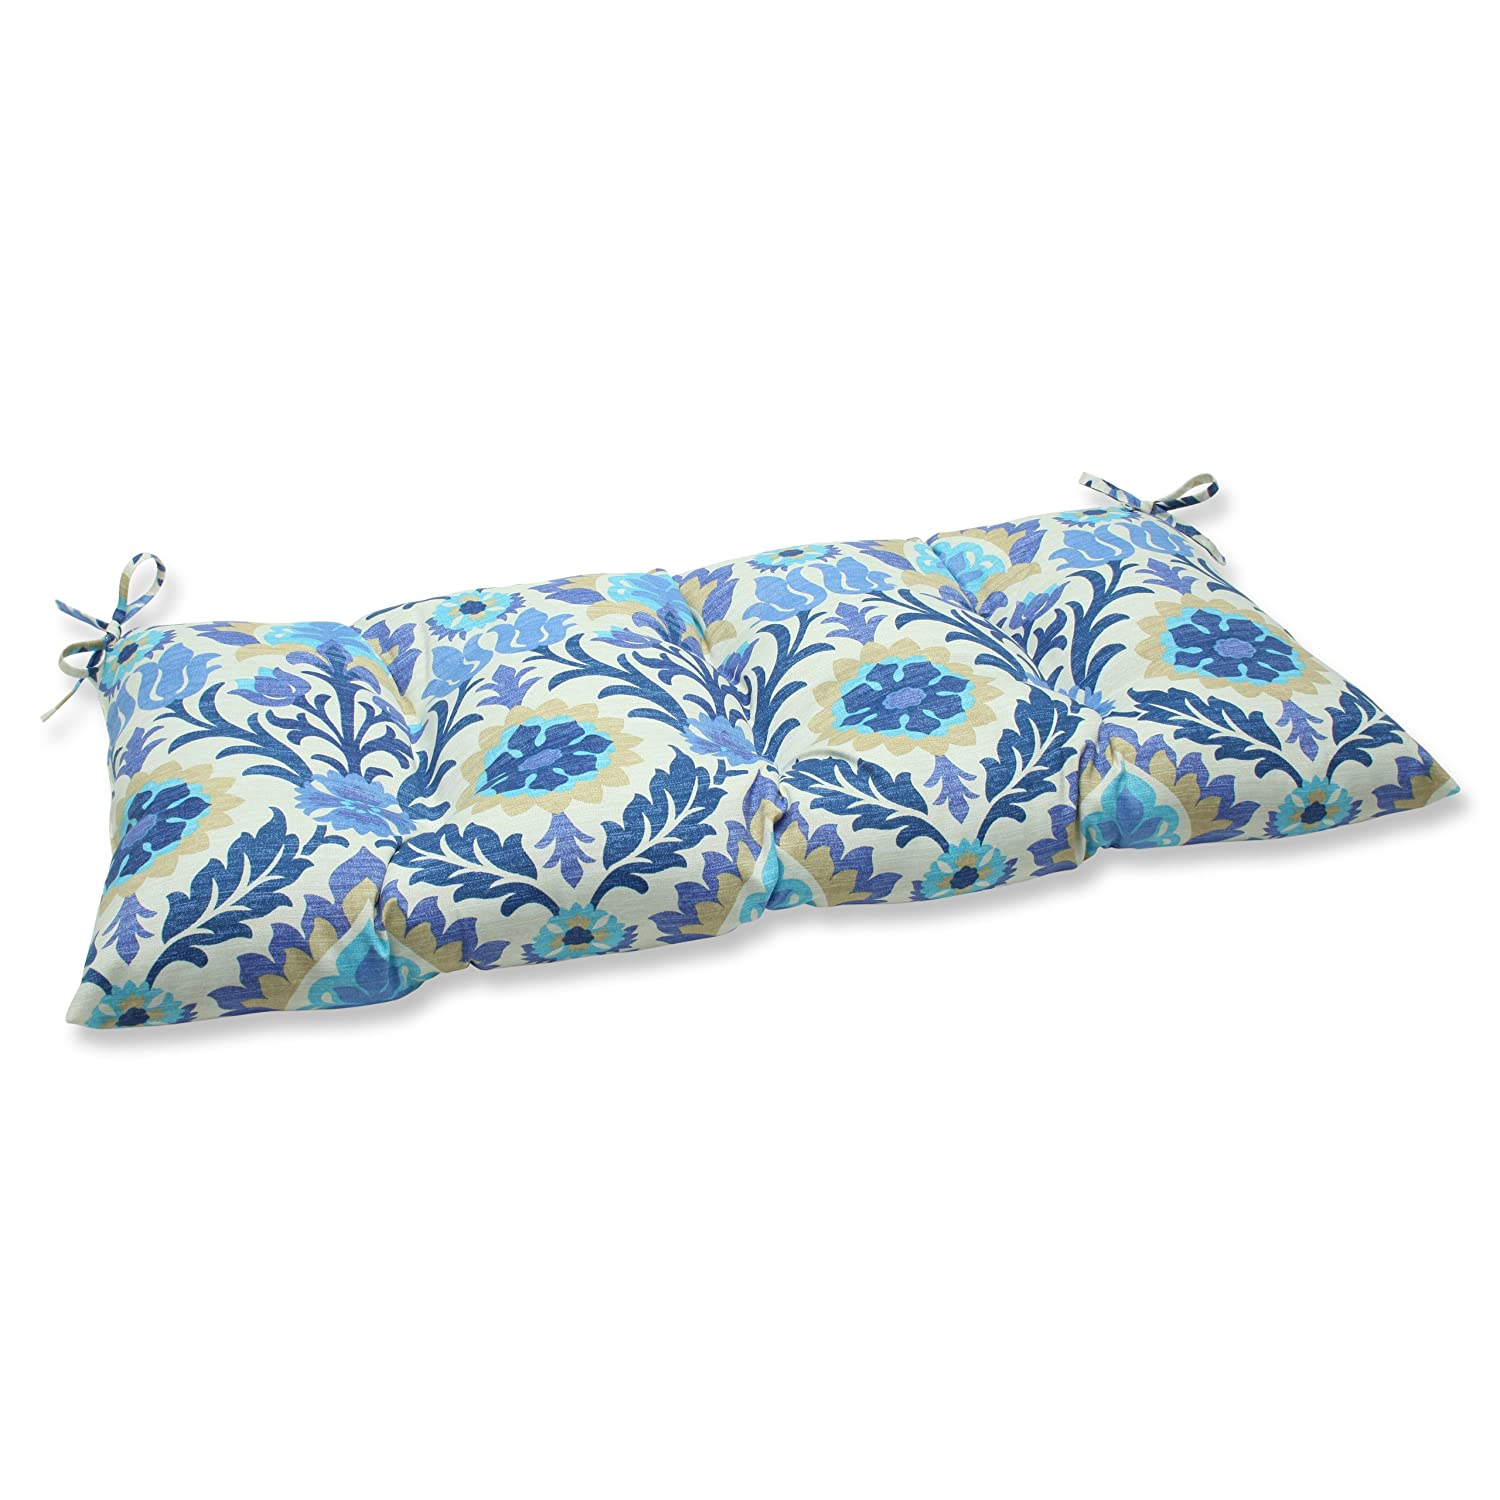 Pillow Perfect Indoor Outdoor Santa Maria Azure Swing Bench Cushion